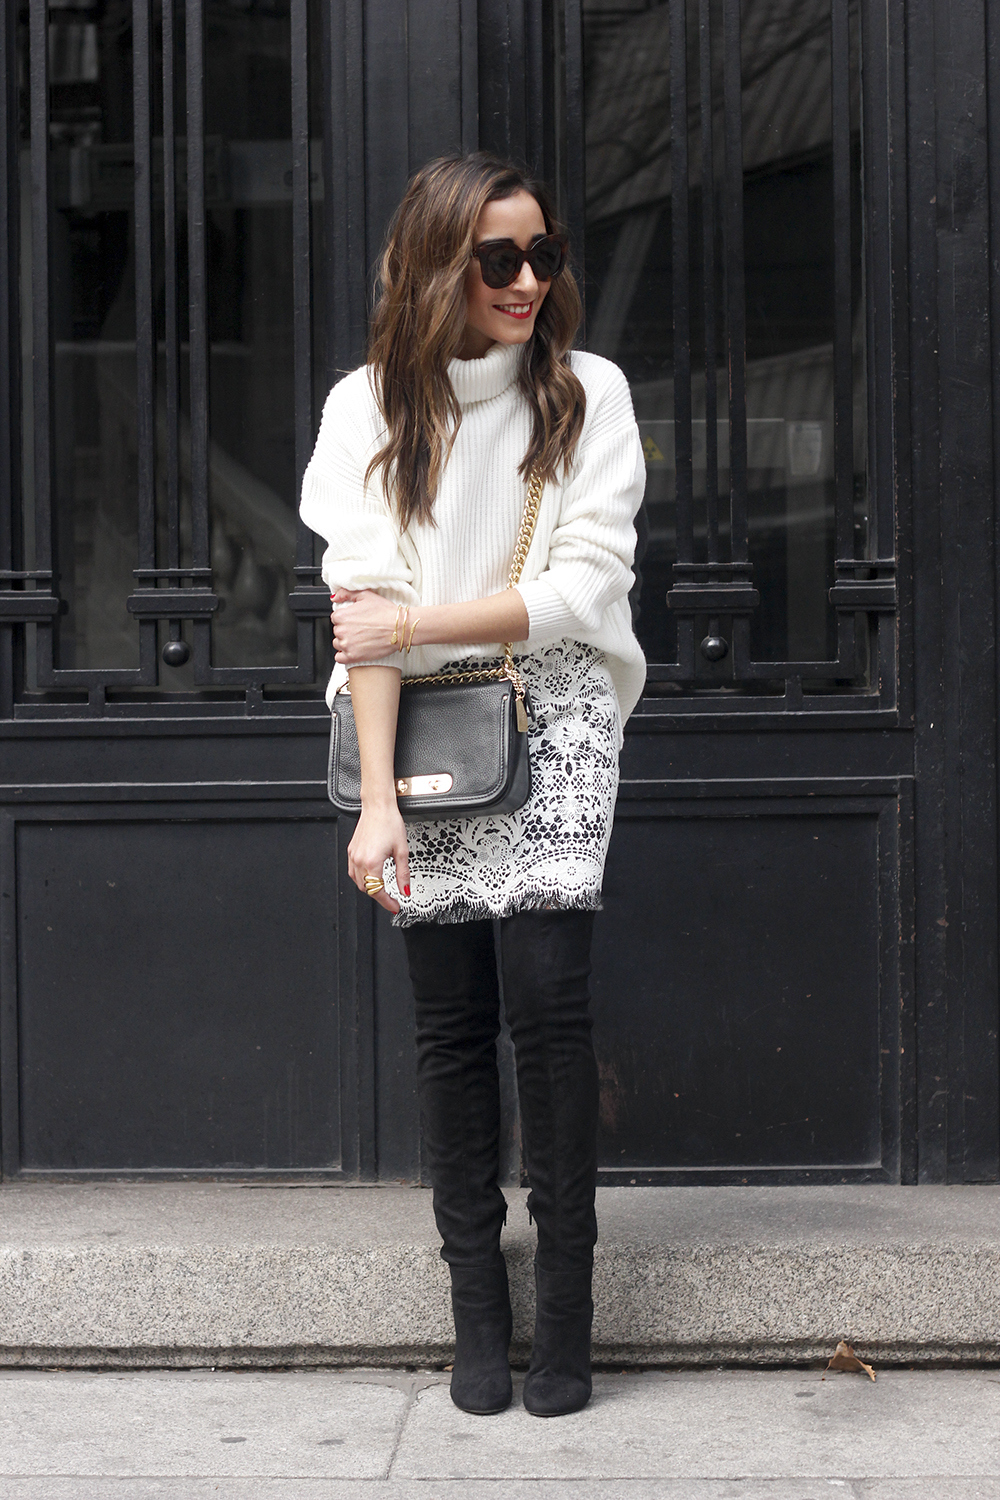 black and white lace skirt over the knee boots white turtleneck jersey outfit style winter01